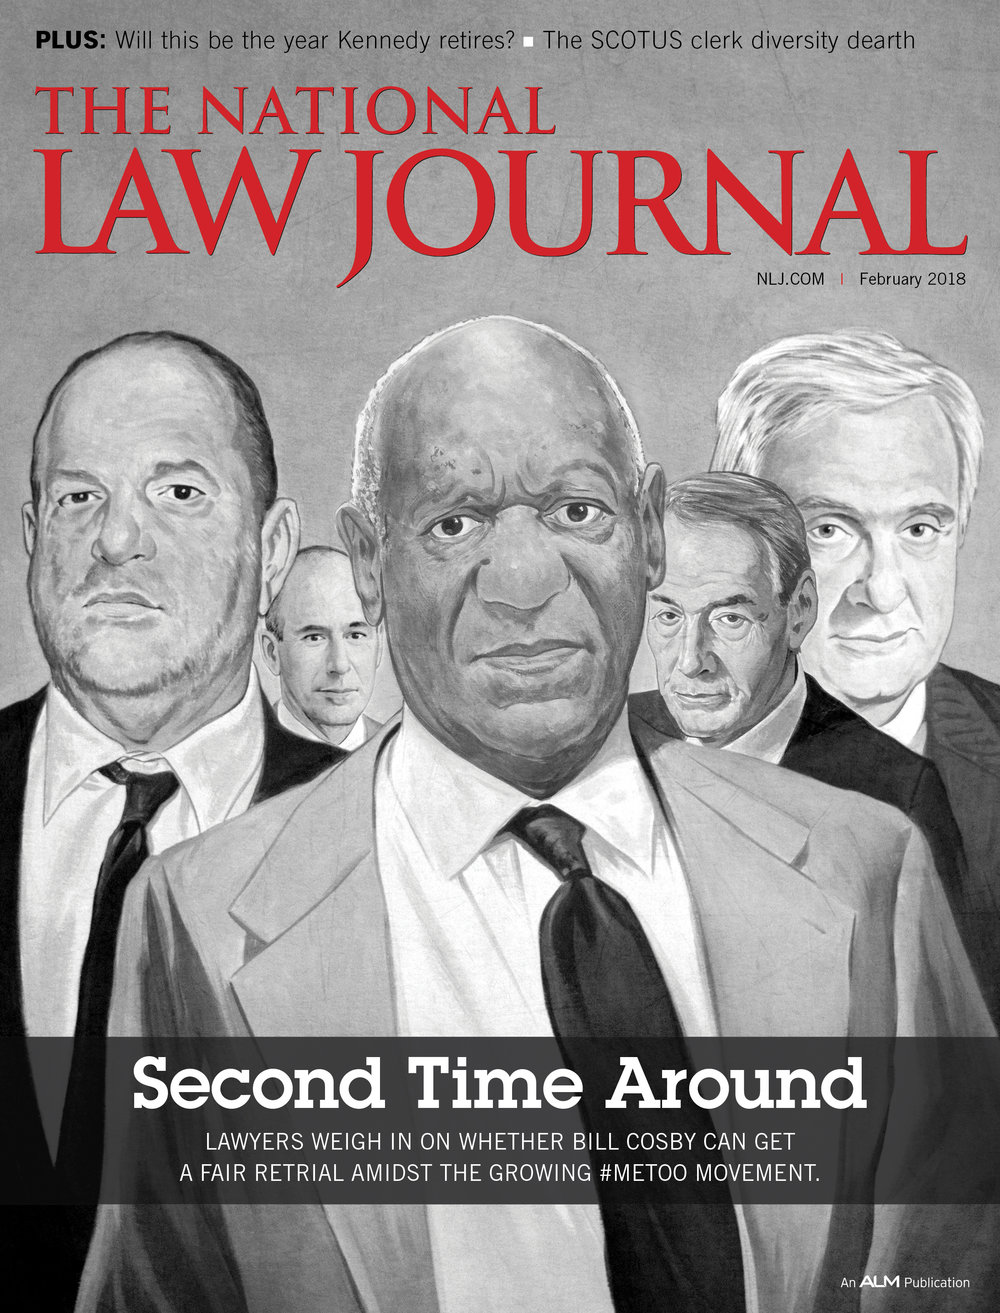 Second Time Around #timesup  | The National Law Journal cover illustration | February 2017